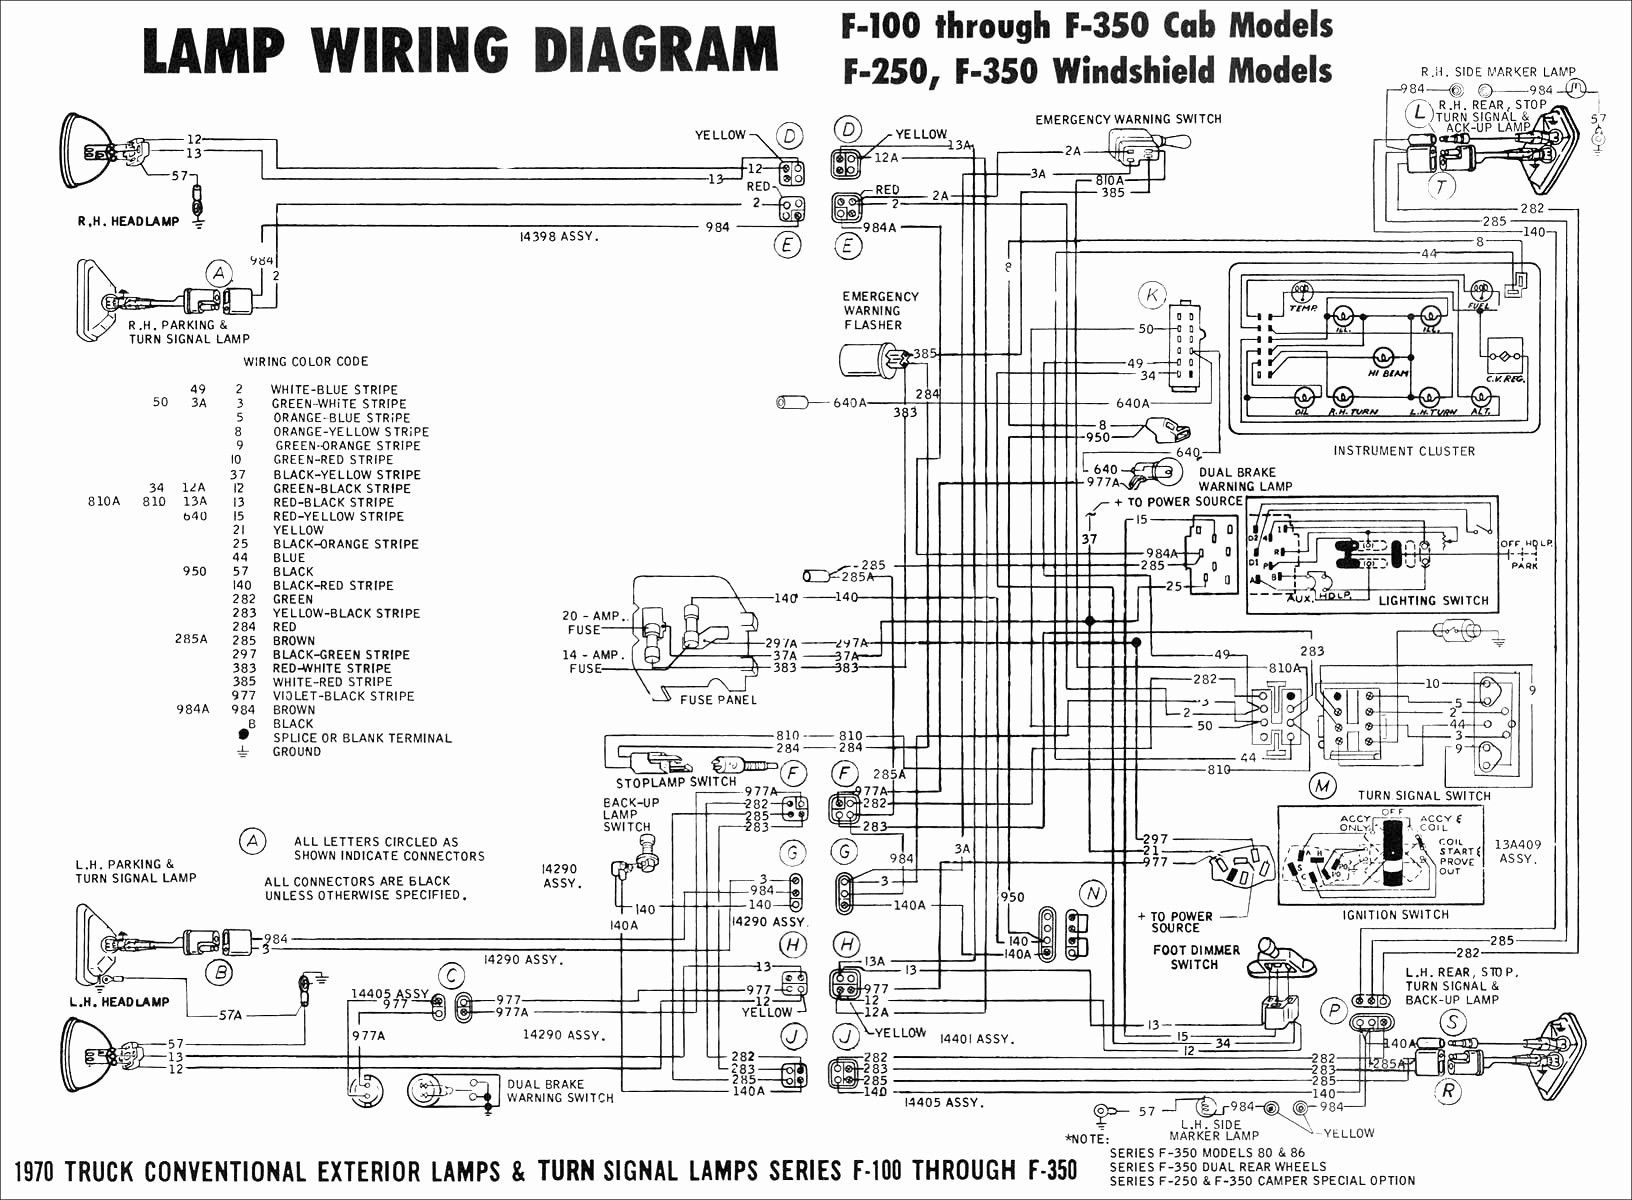 New Wiring Diagram Of A Distribution Board Trailer Wiring Diagram Electrical Wiring Diagram Circuit Diagram